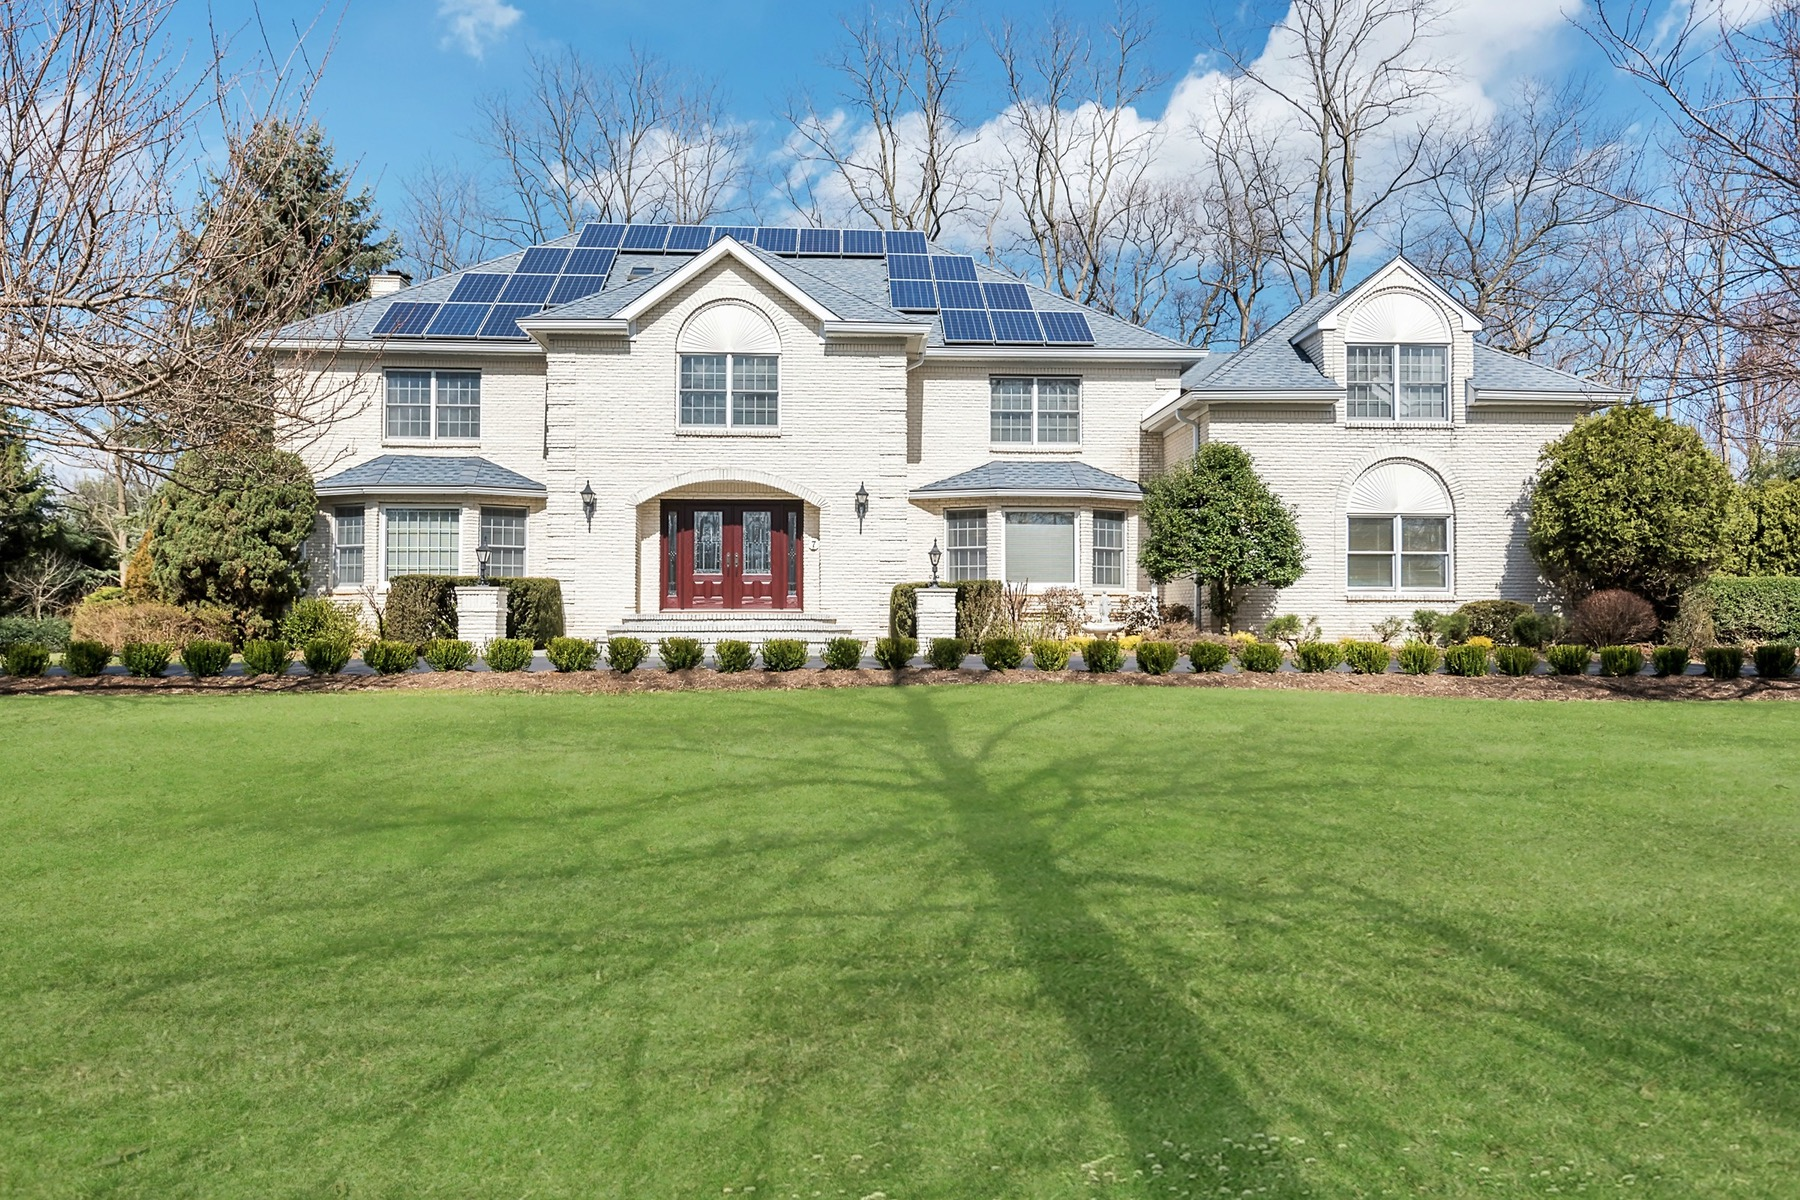 Single Family Home for Sale at Serenity Awaits in Prestigious Holmdel! 7 Cobblestone Court Holmdel, New Jersey 07733 United States